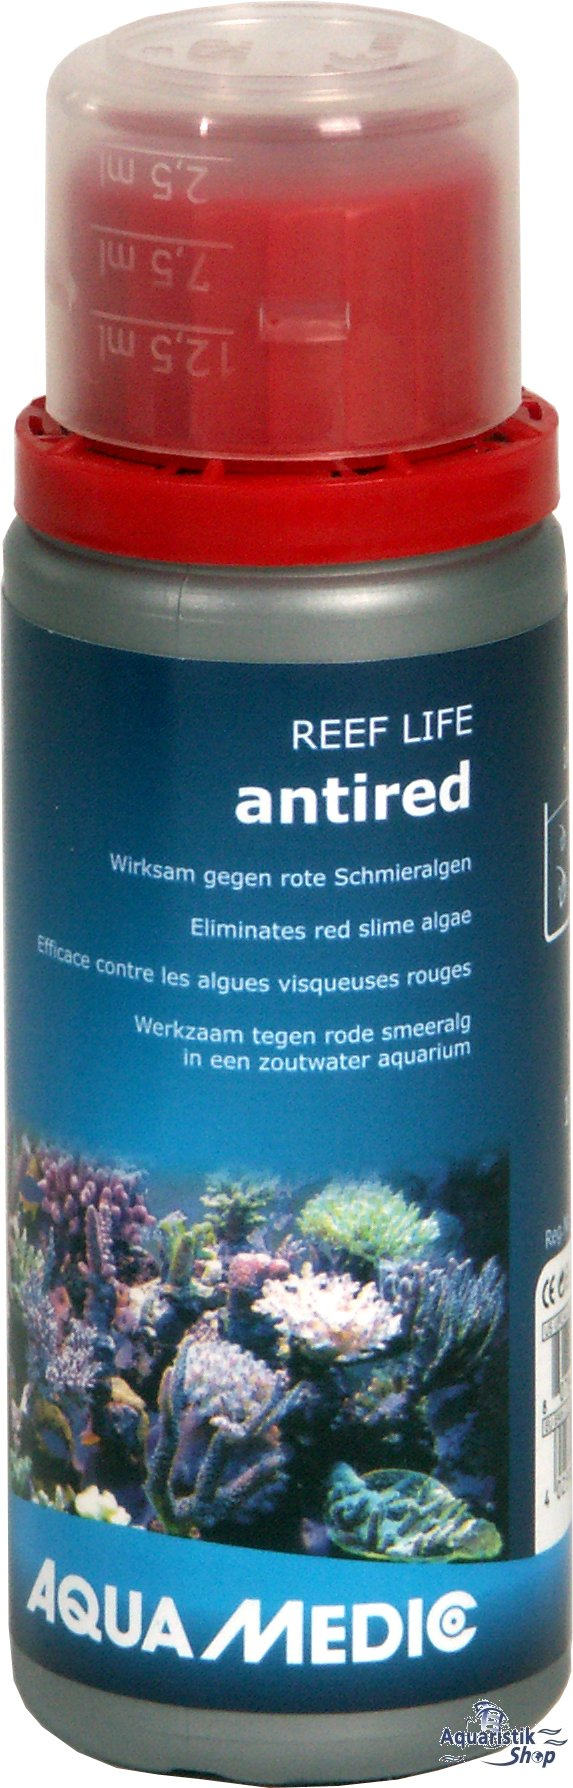 Shop Aqua Medic REEF LIFE antired